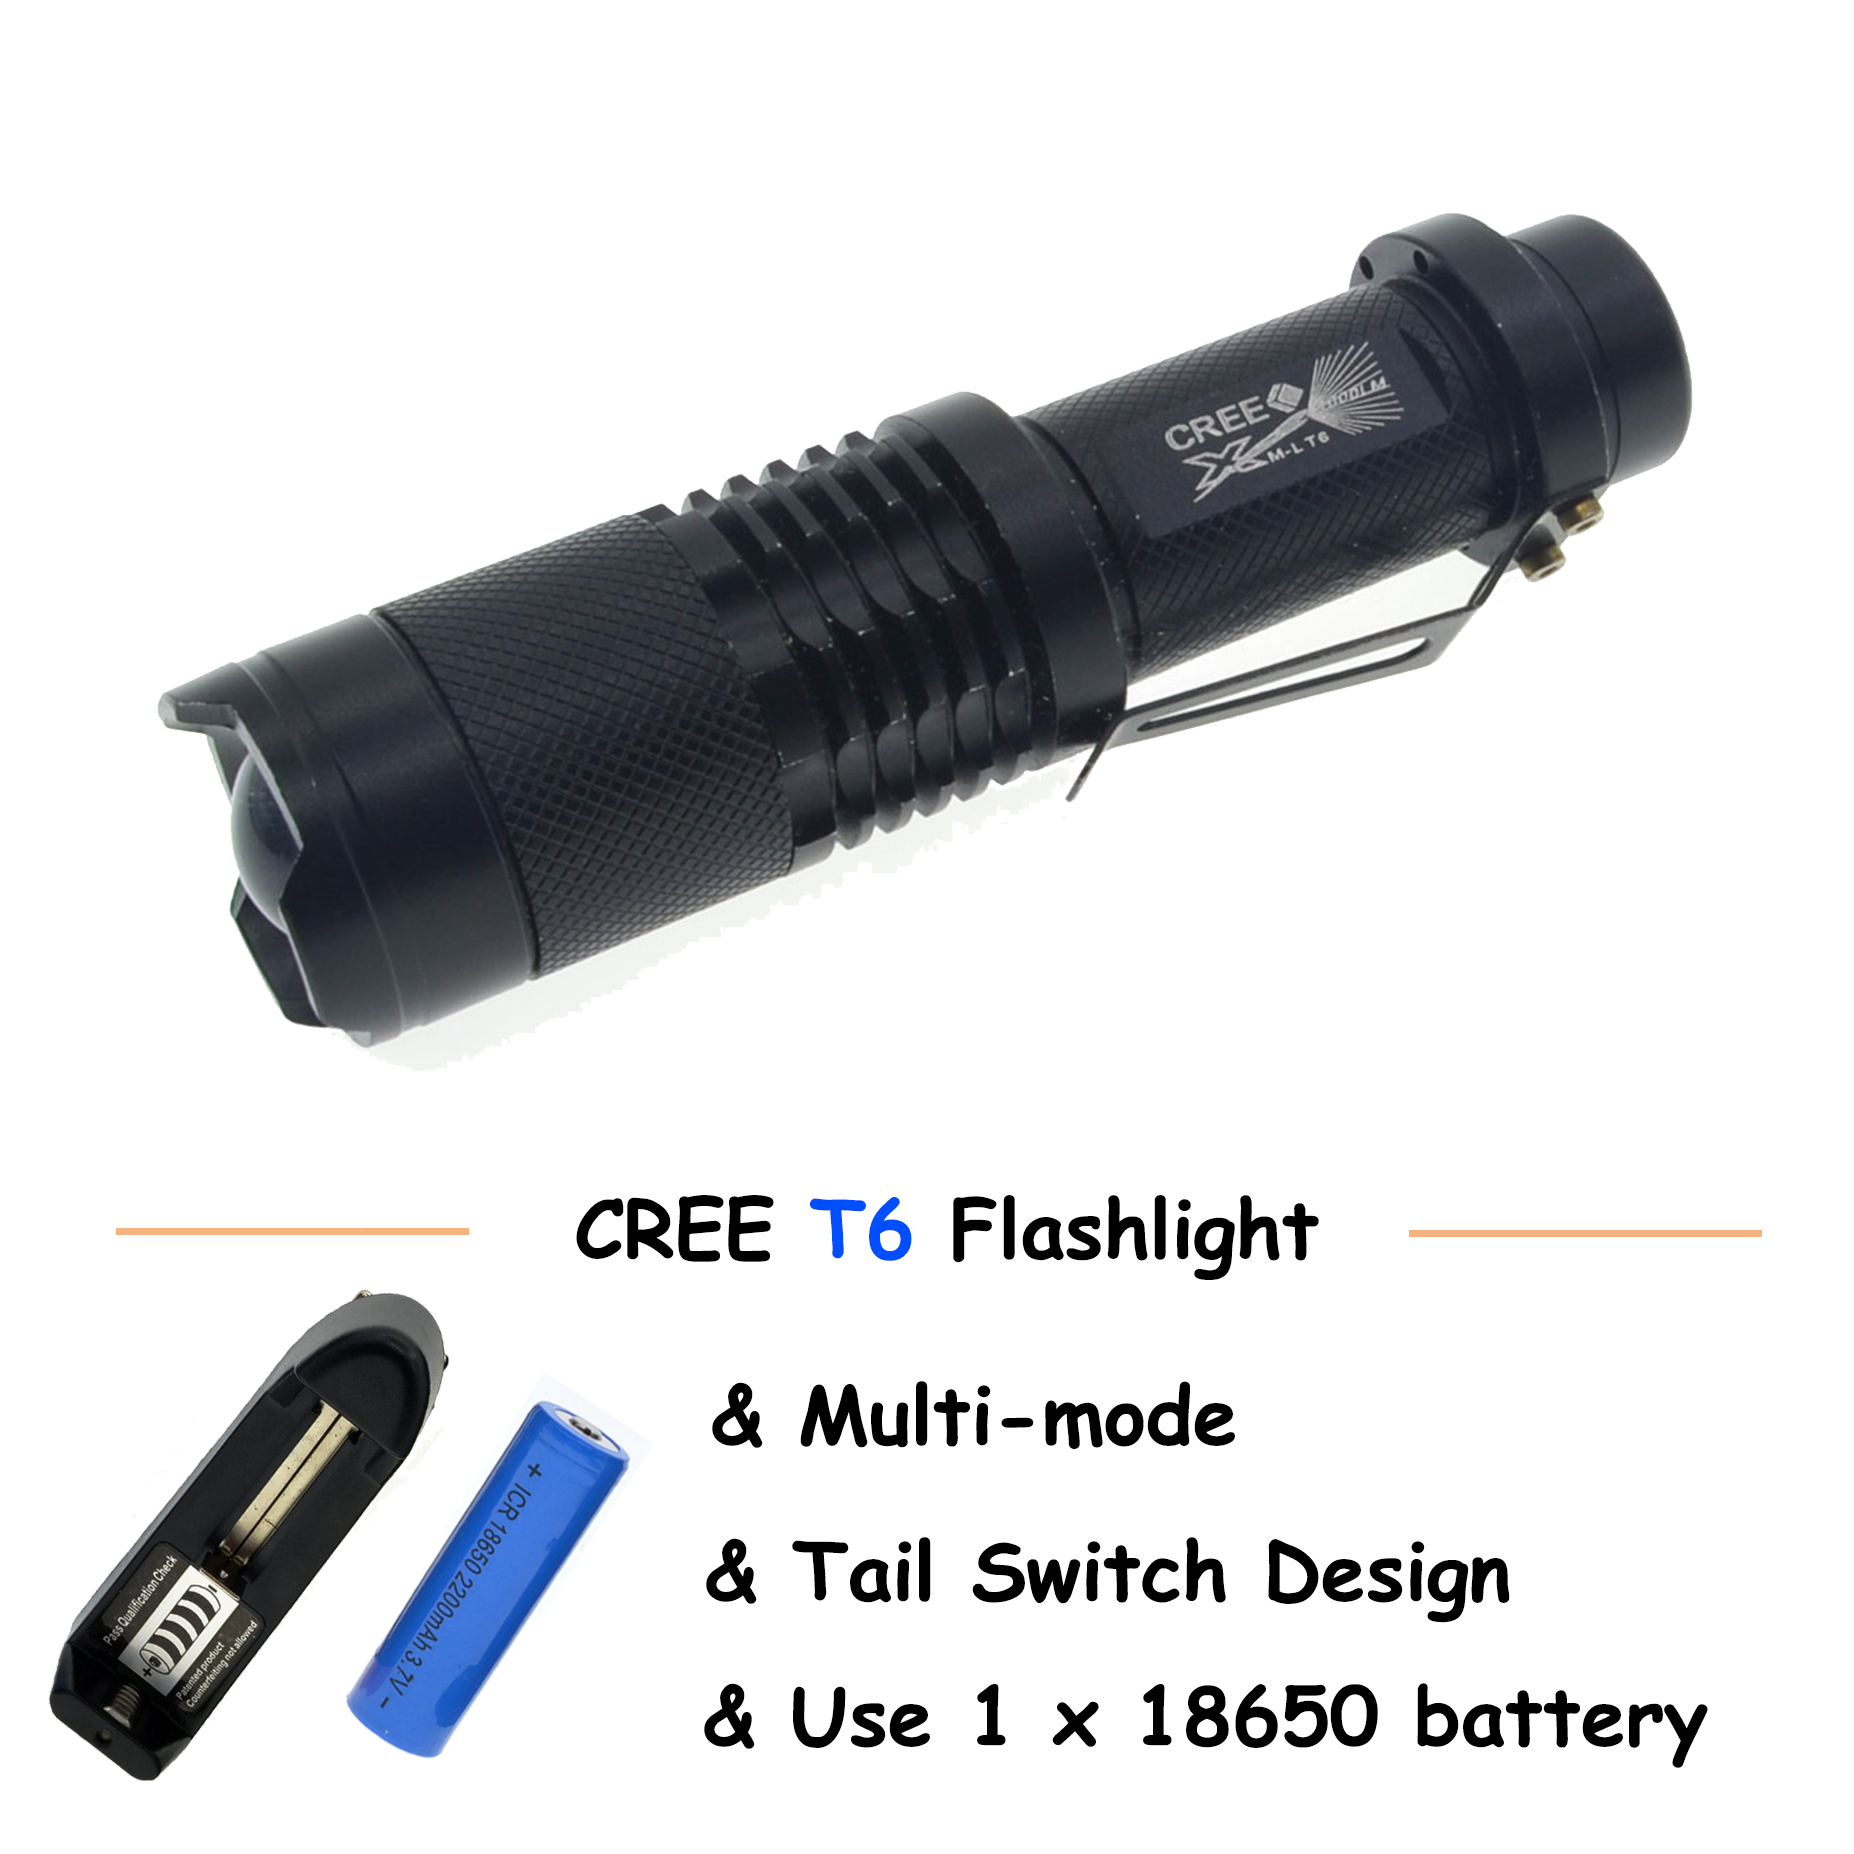 цена на cree rechargeable flashlight led torch XM L T6 waterproof  5 mode lanterna flash light lamp battery 18650 with charger